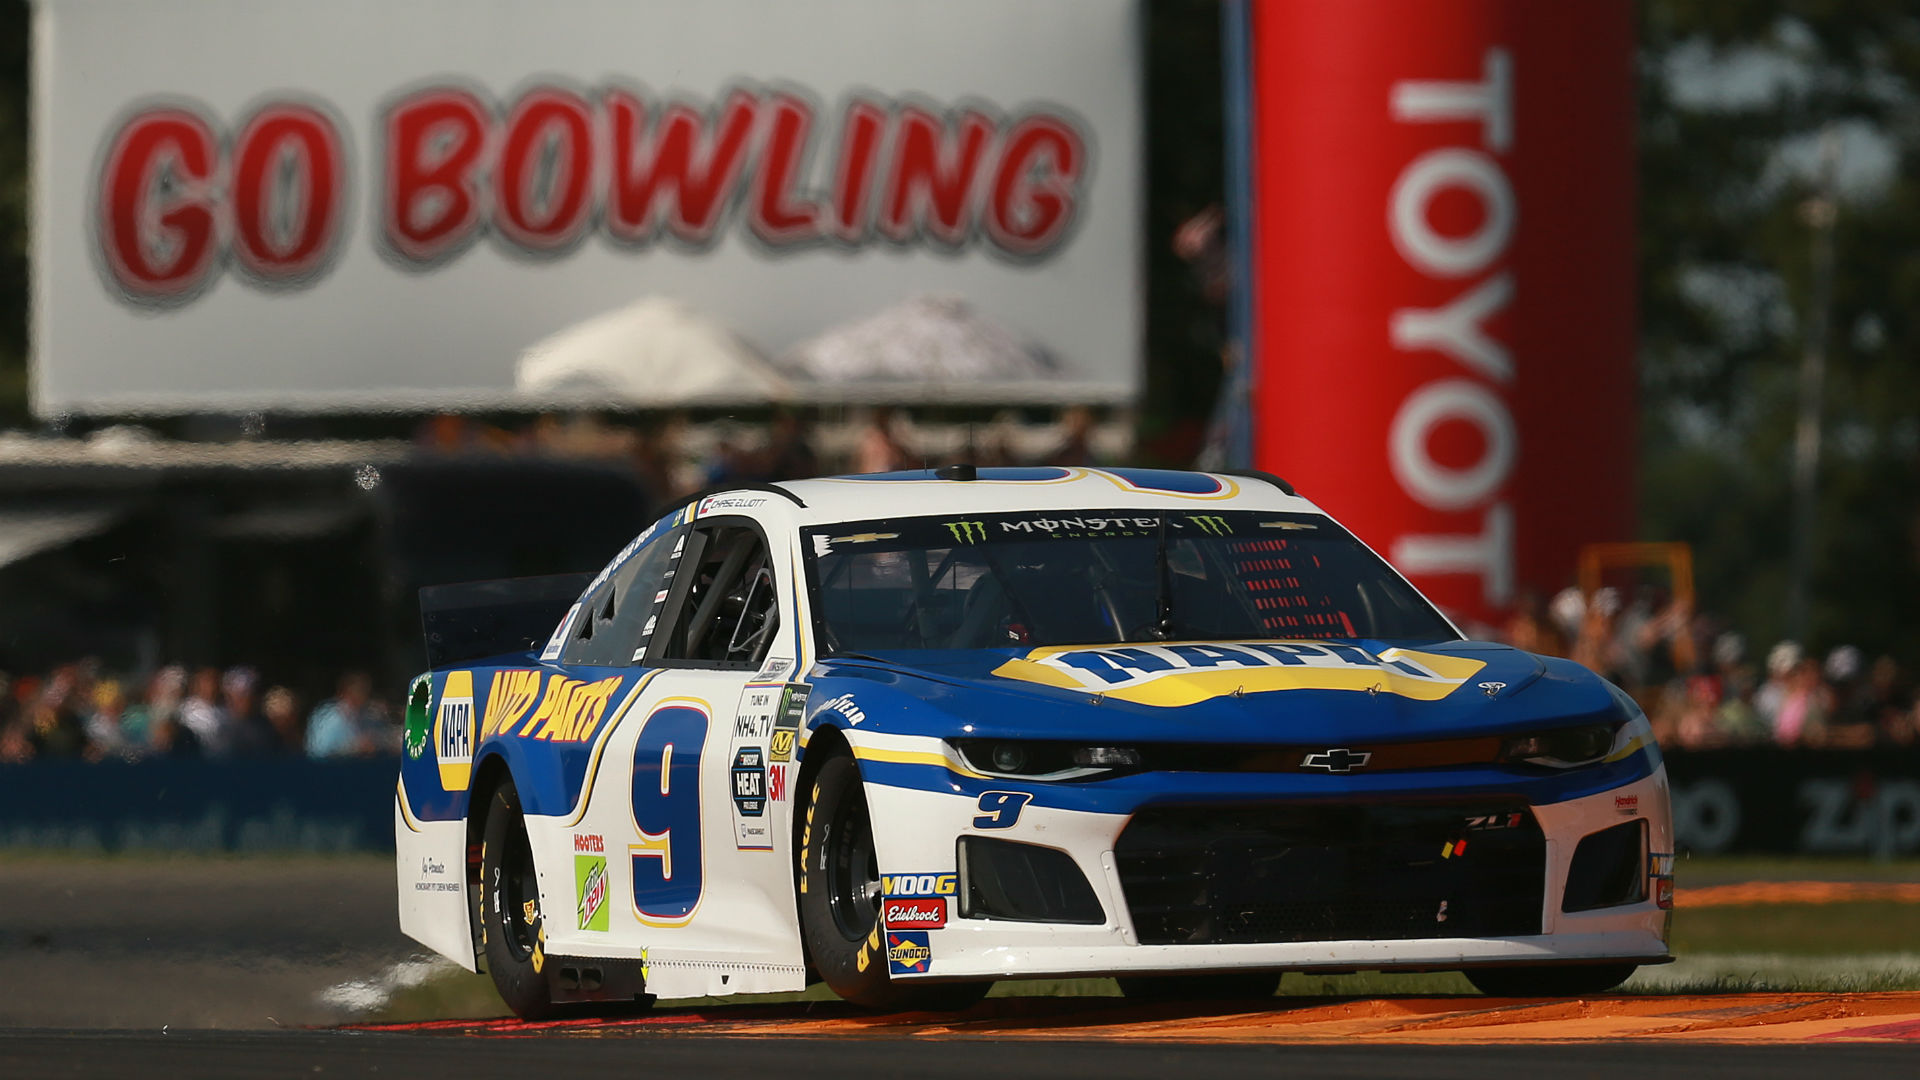 NASCAR results at Watkins Glen: Chase Elliott repeats in Go Bowling at the Glen – Sporting News